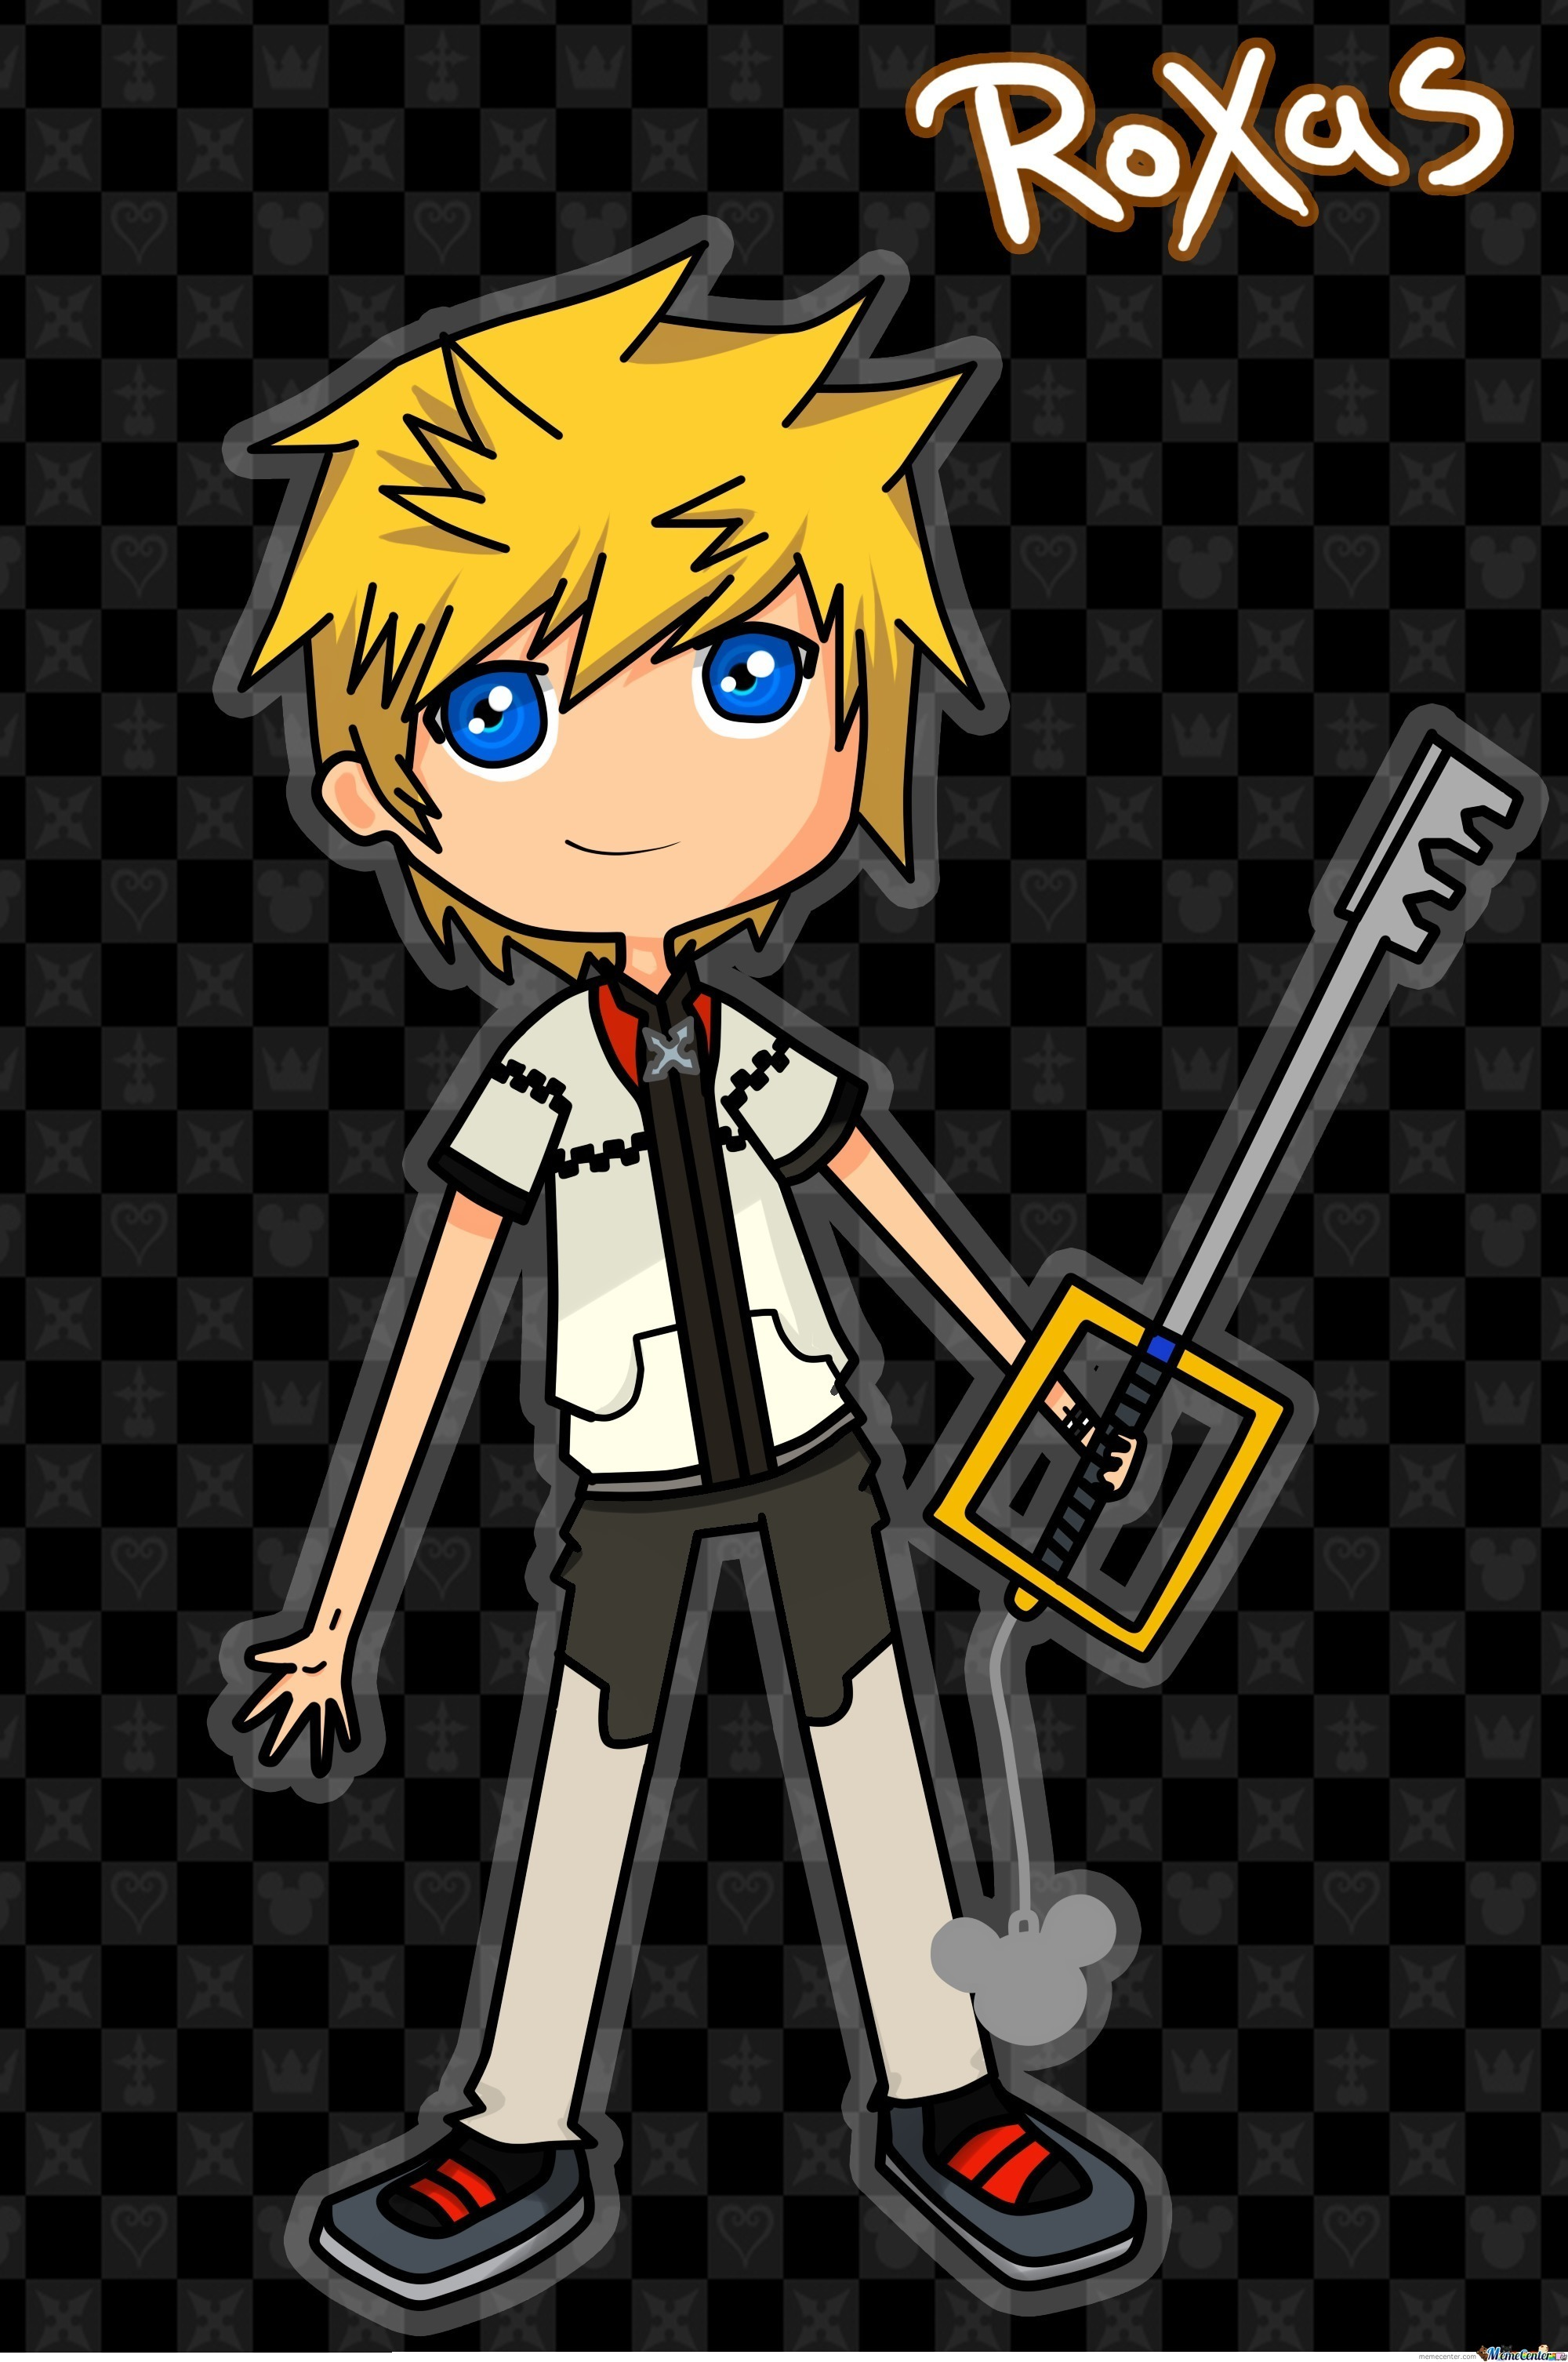 For The Guy Who Asked Me To Draw Roxas Lol